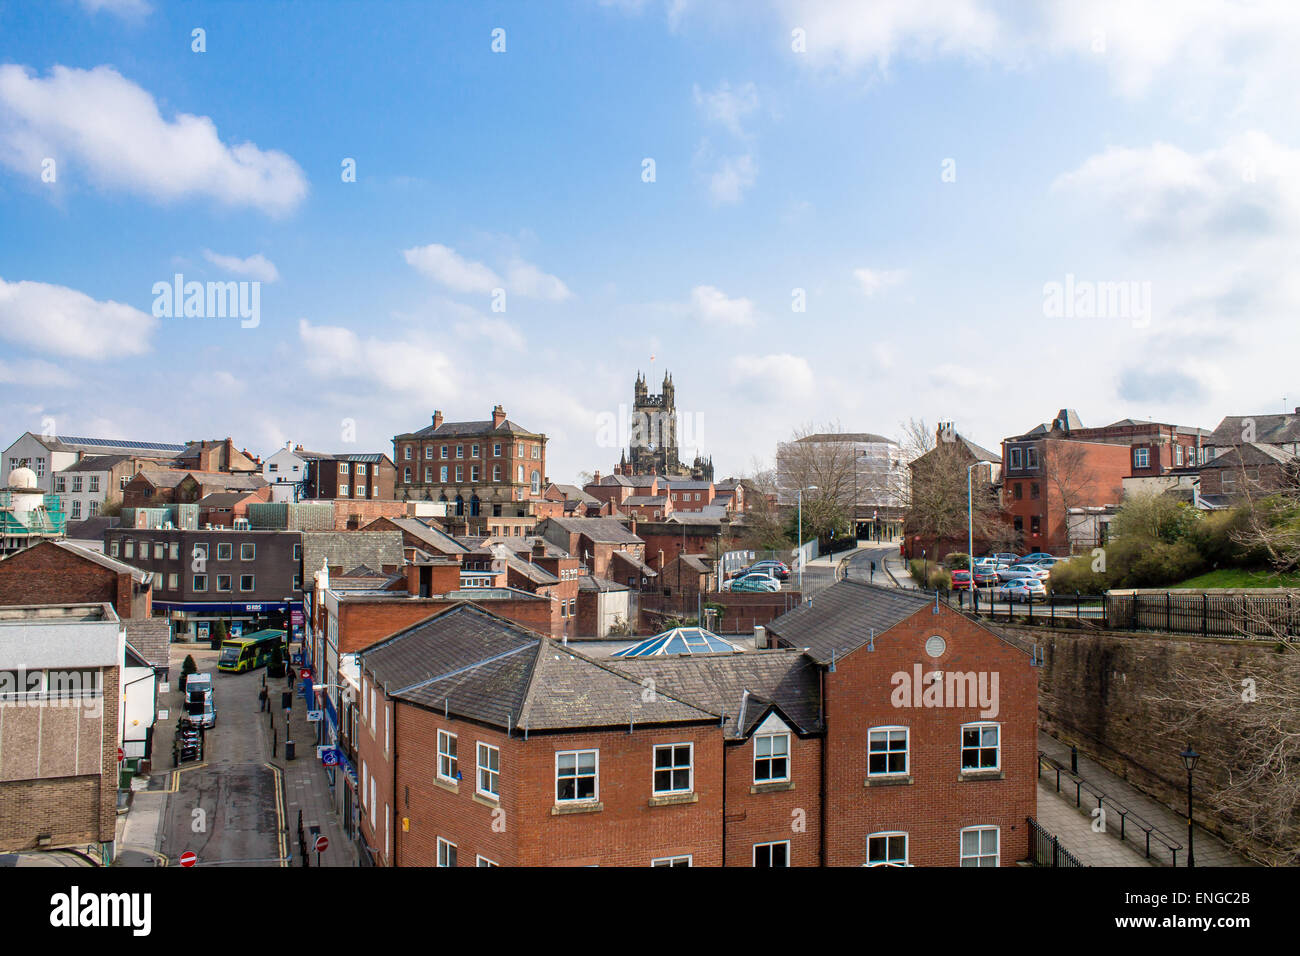 Cityscape in market town of Stockport, United Kingdom. - Stock Image